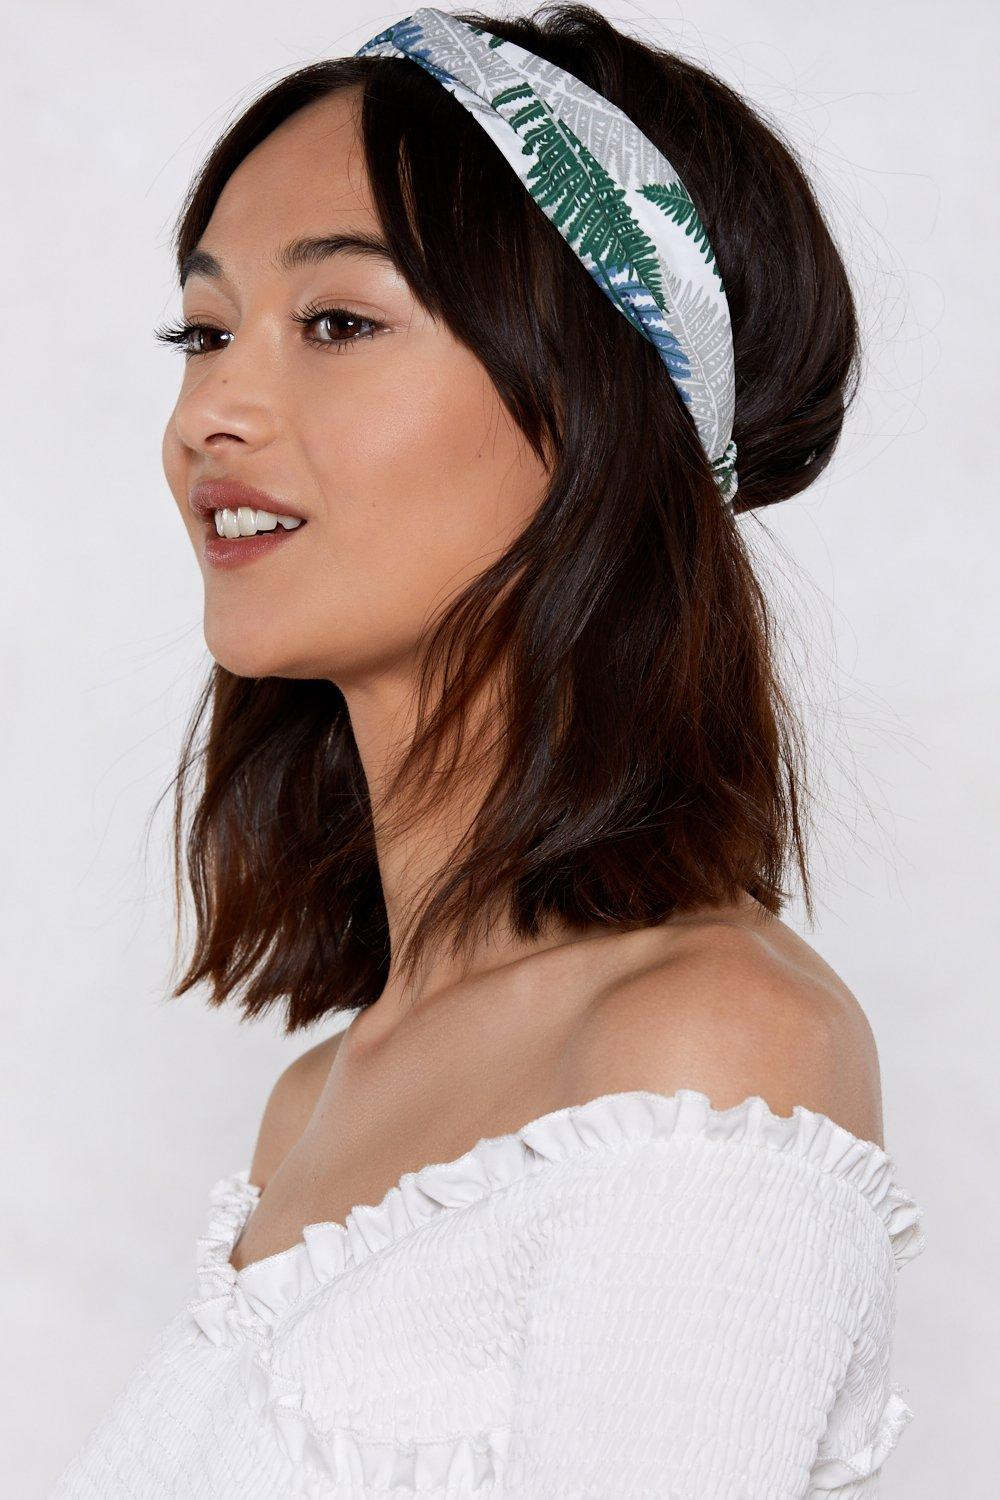 Be-Leaf Me Knot Headband  ecfad7958a6